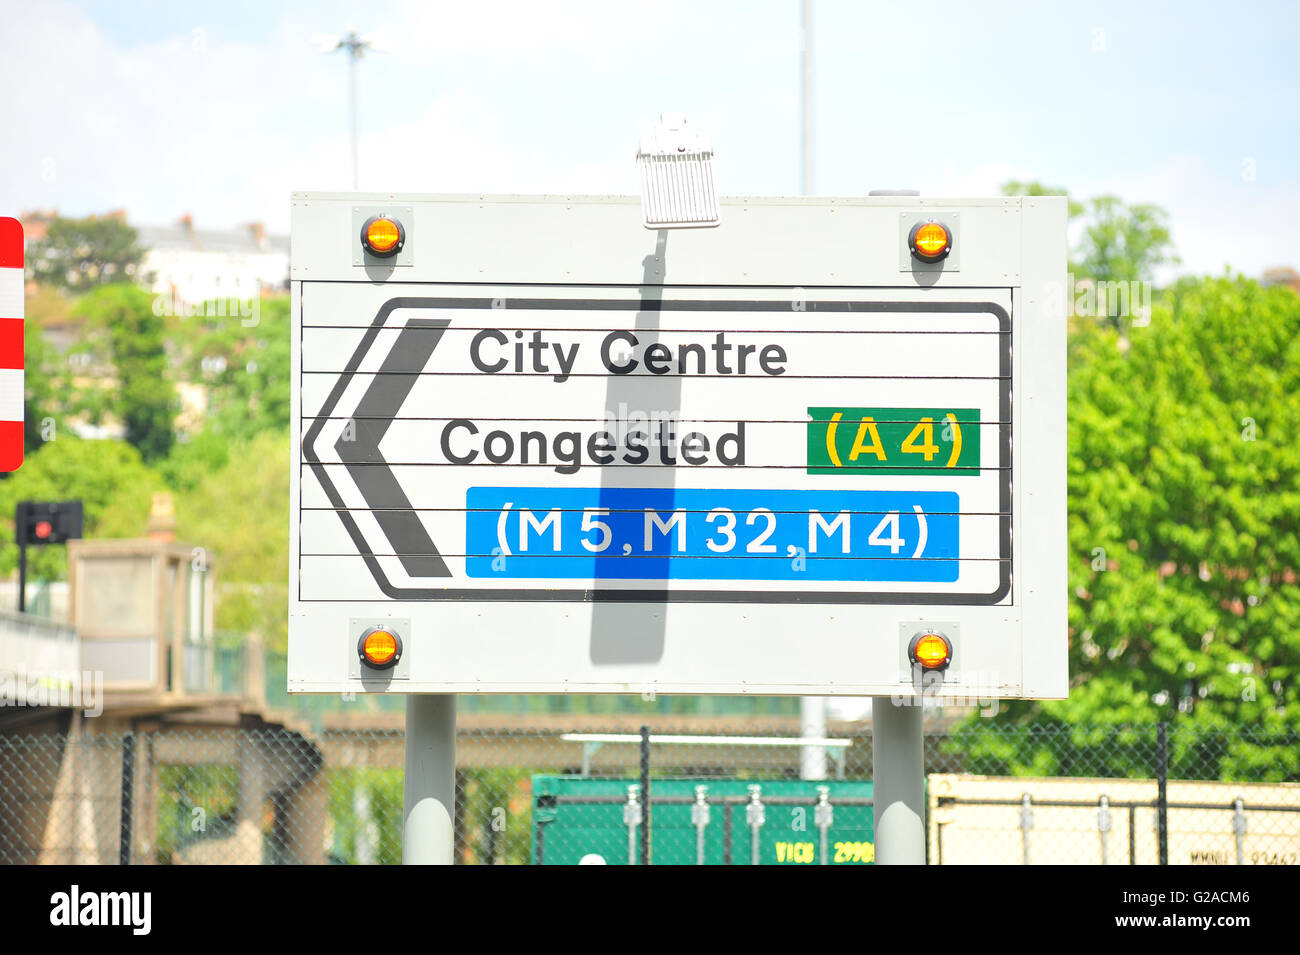 A road sign with Congested written on it in Bristol. - Stock Image